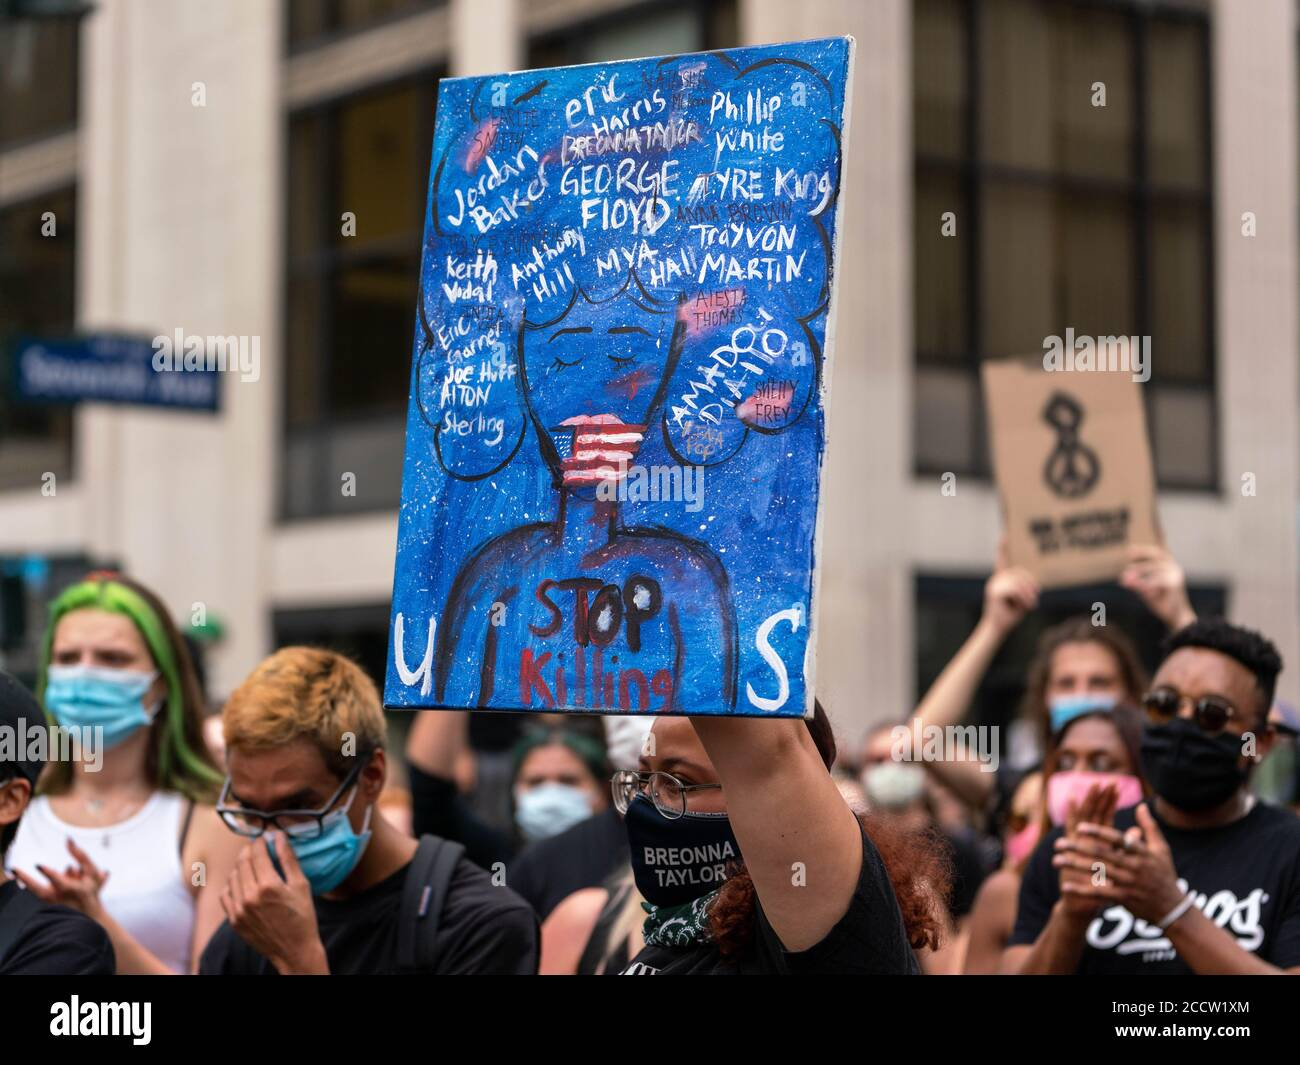 New York, New York, USA. 24th Aug, 2020. New York, New York, U.S.: demonstrators march in Midtown in solidarity with Jacob Blake who was shot and critically injuredby a Kenosha Police Department officer on Sunday. Credit: Corine Sciboz/ZUMA Wire/Alamy Live News Stock Photo